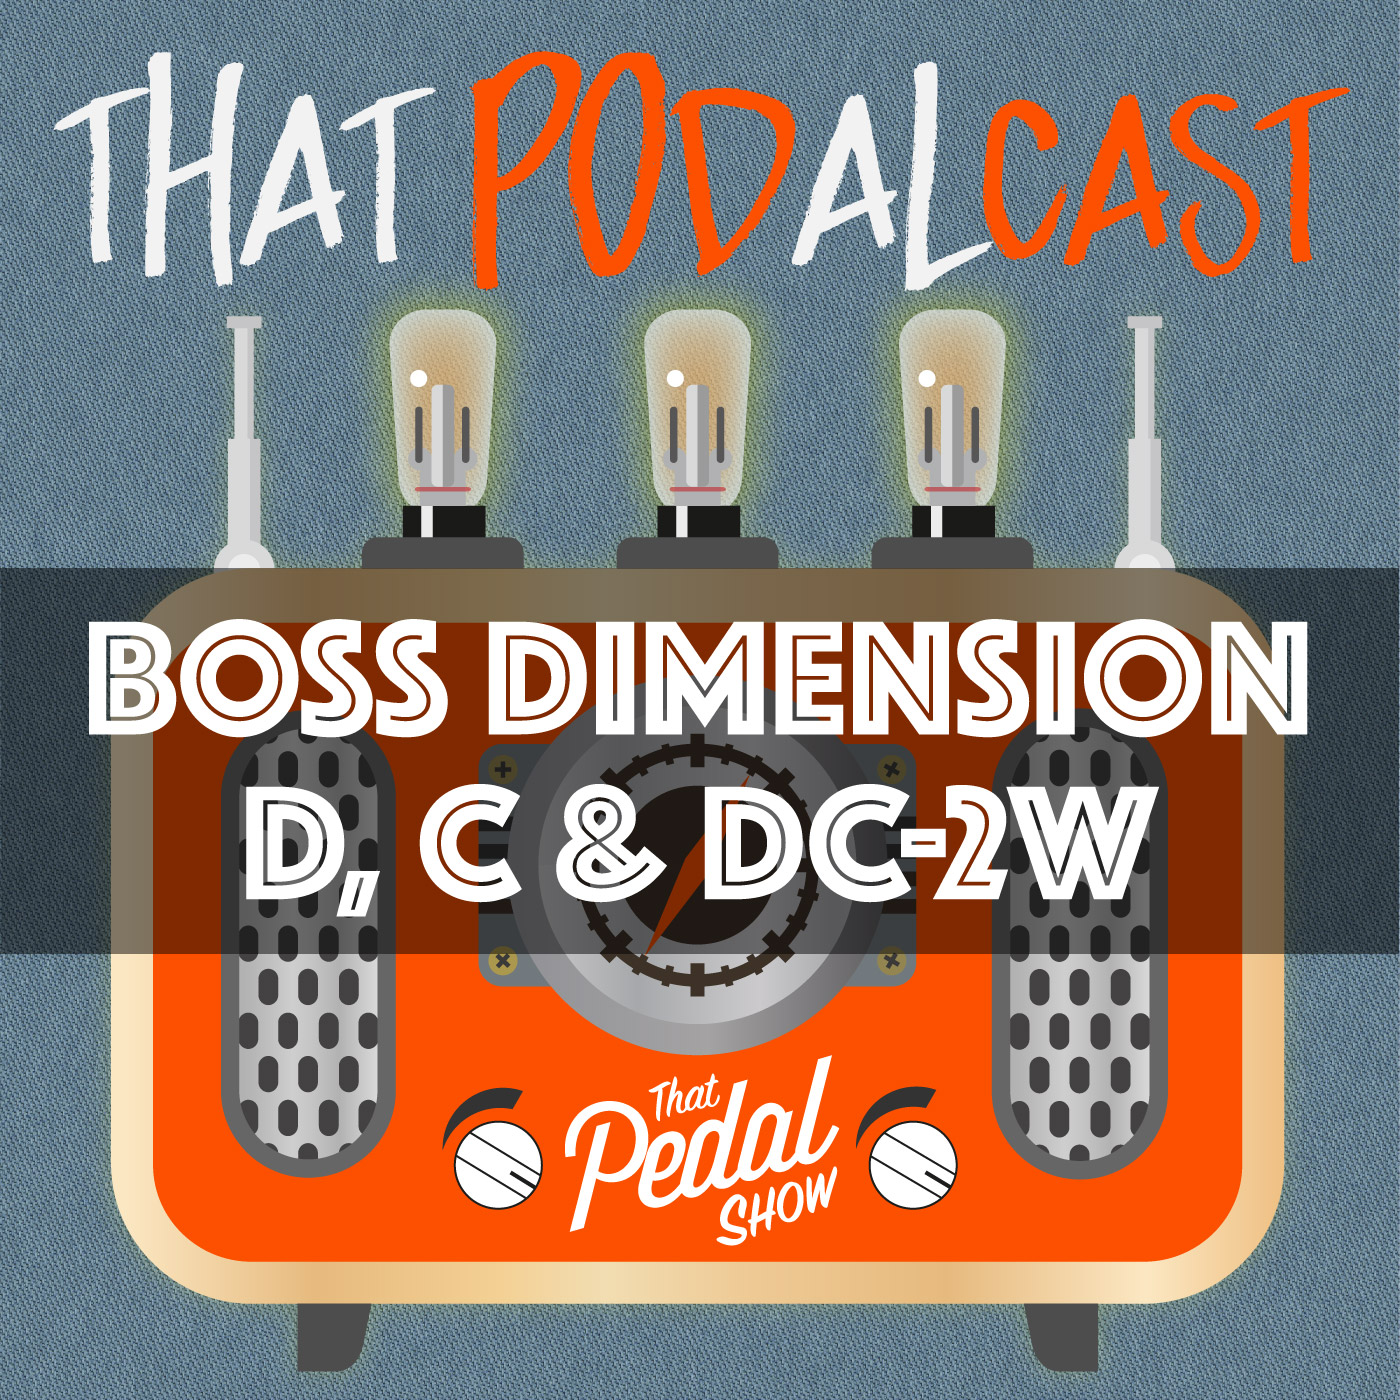 Boss Dimension D, C and DC-2W